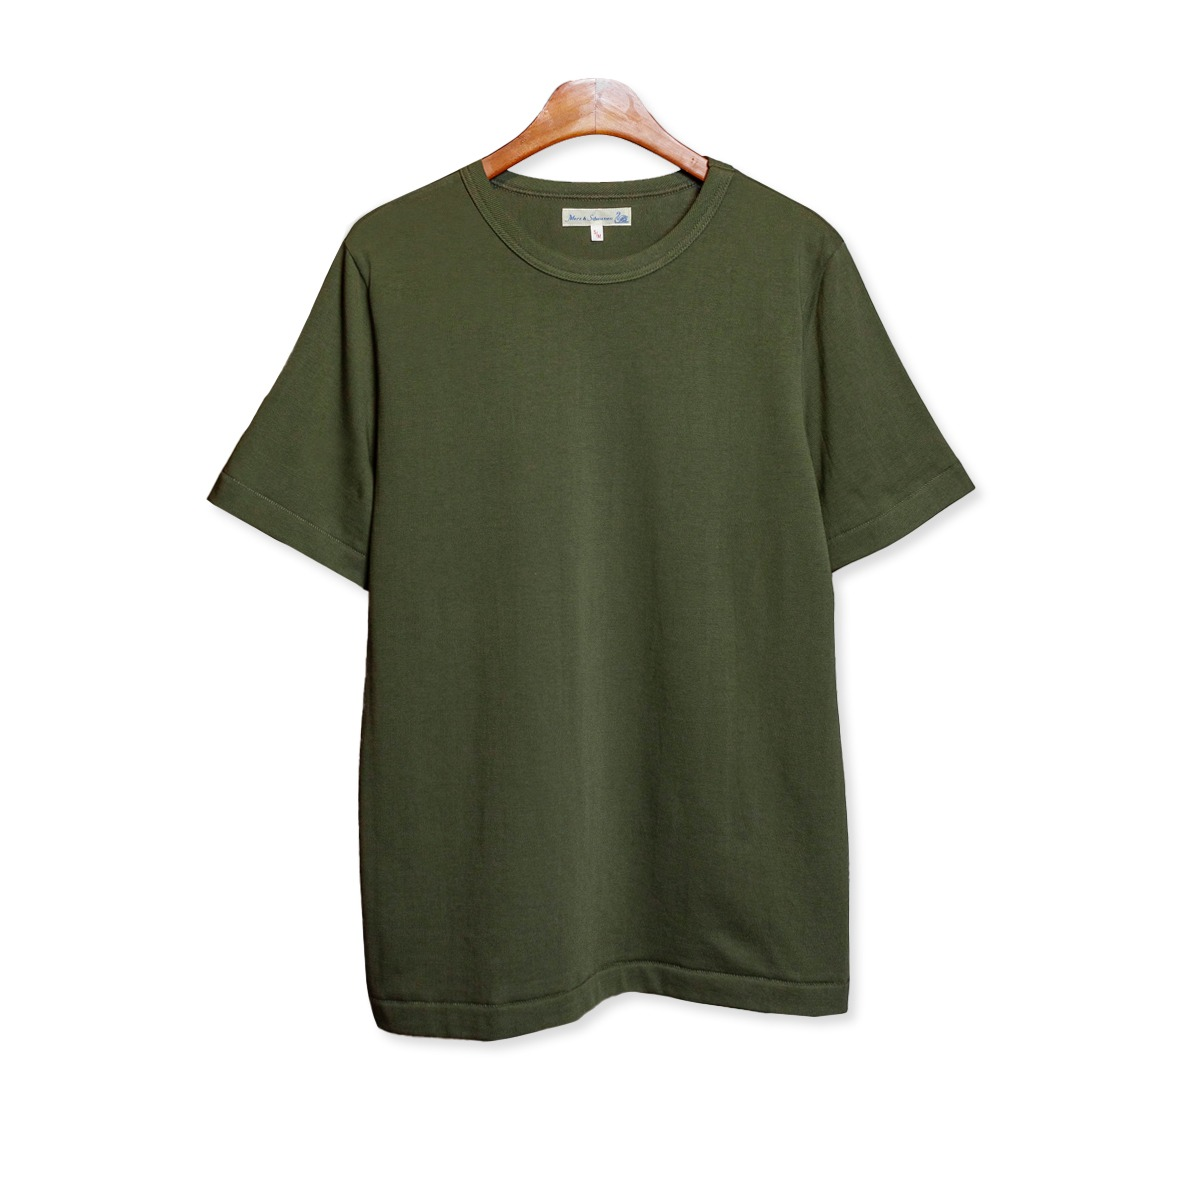 [Merz B. Schwanen] GOOD ORIGINALS MEN'S CREW NECK T-SHIRT 'ARMY'